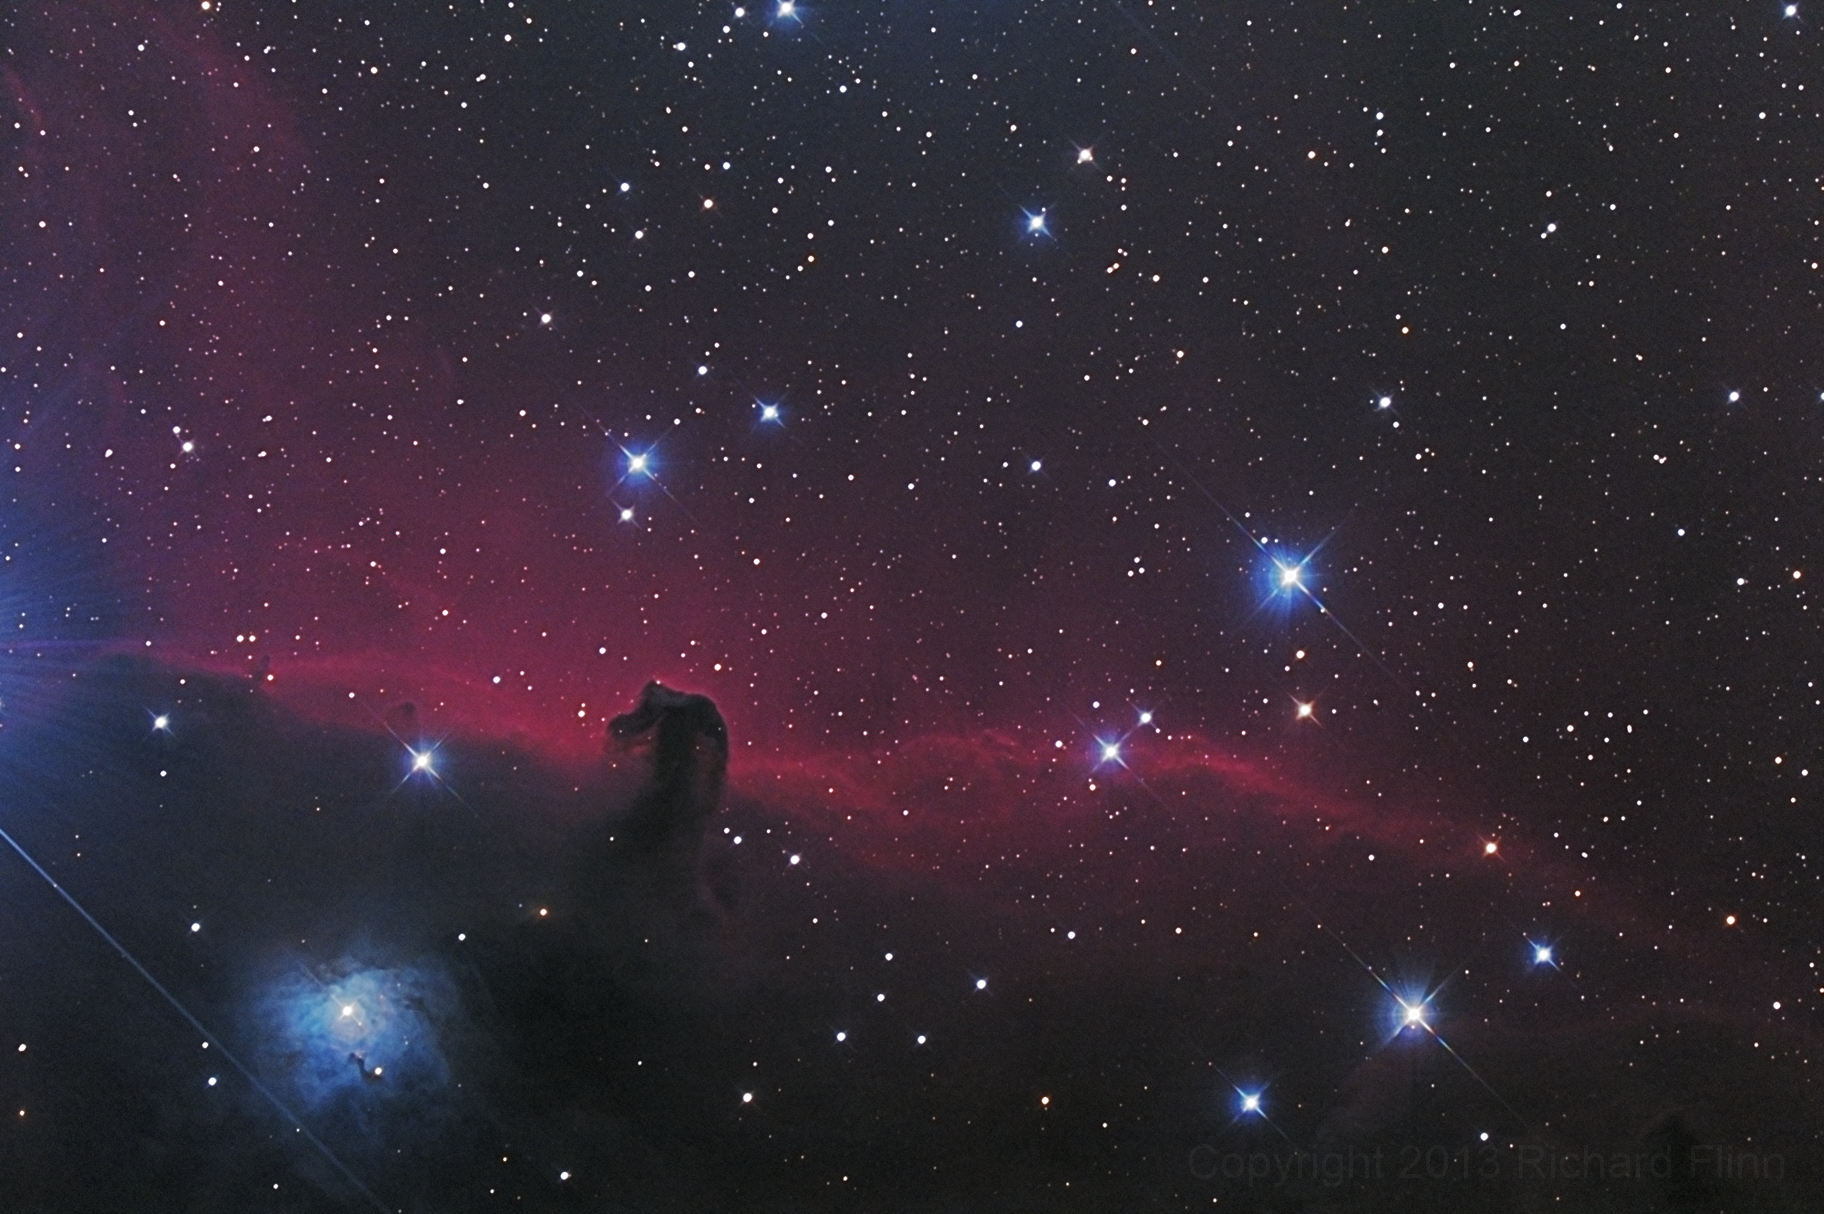 Horsehead Nebula (a.k.a. Barnard 33 in emission nebula IC 434) - dark nebula in the constellation Orion. Also includes: NGC 2023 - reflection nebulae in the constellation Orion.